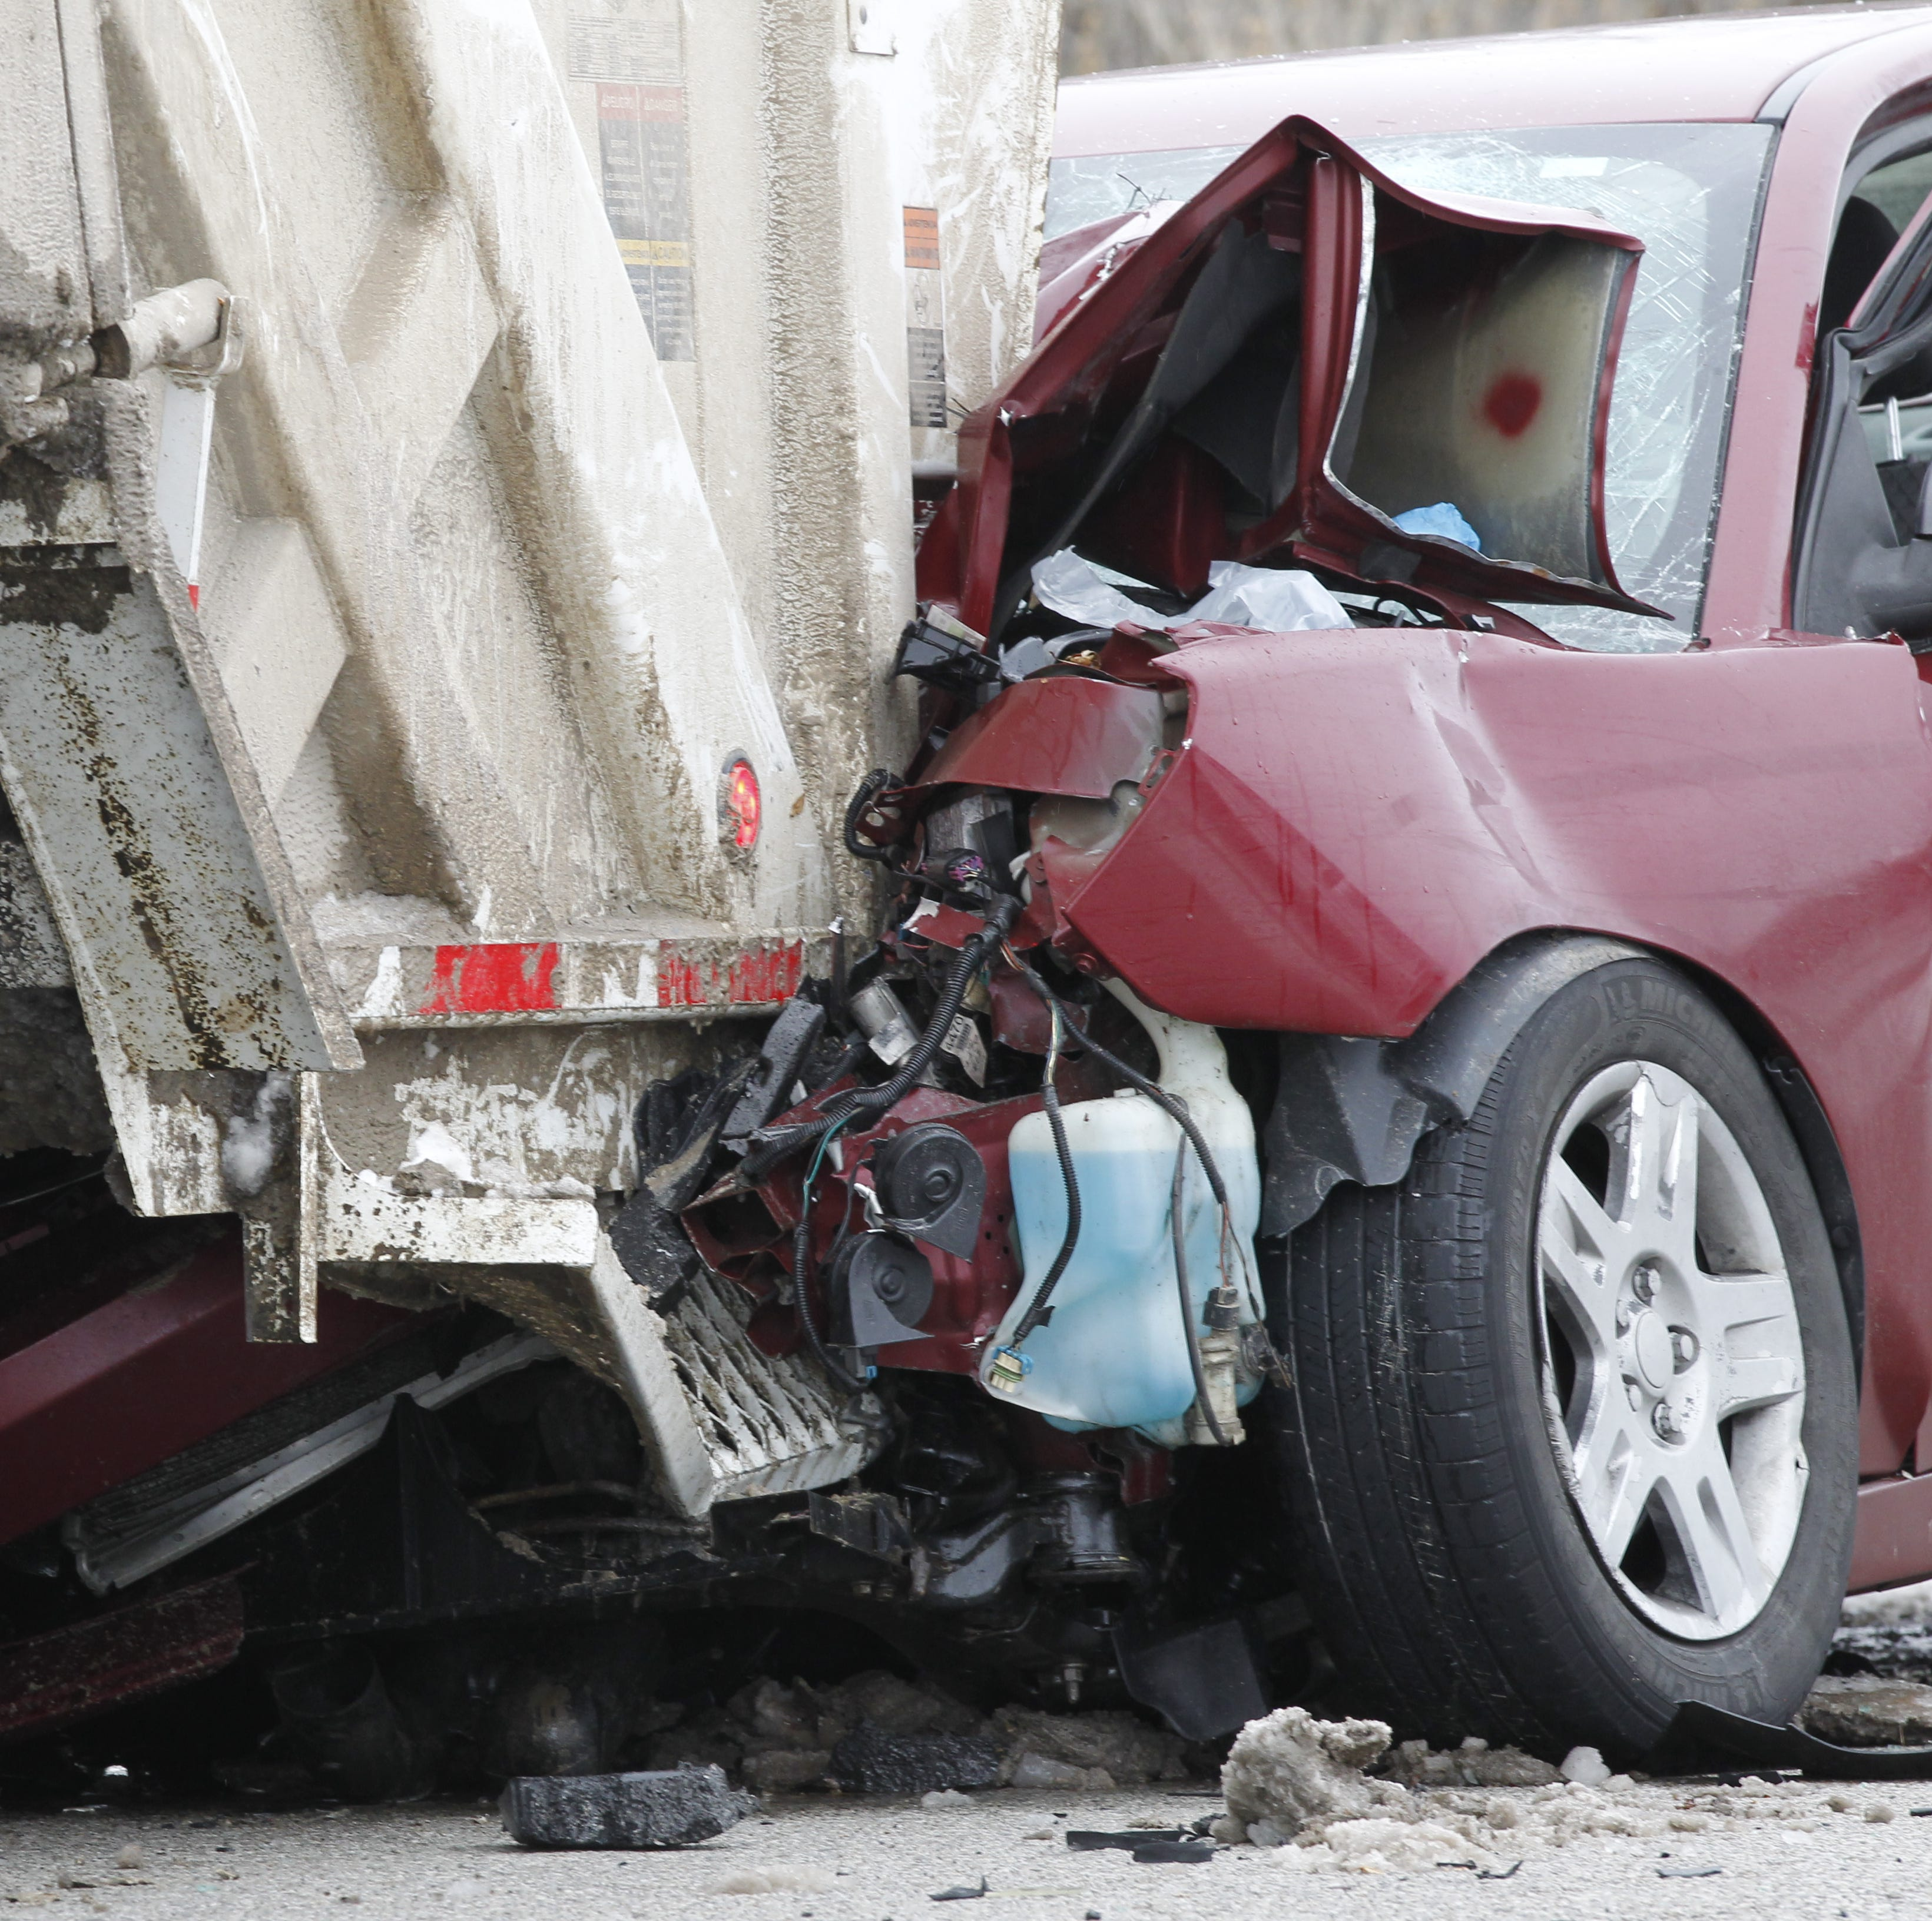 Driver dies after colliding with trash truck